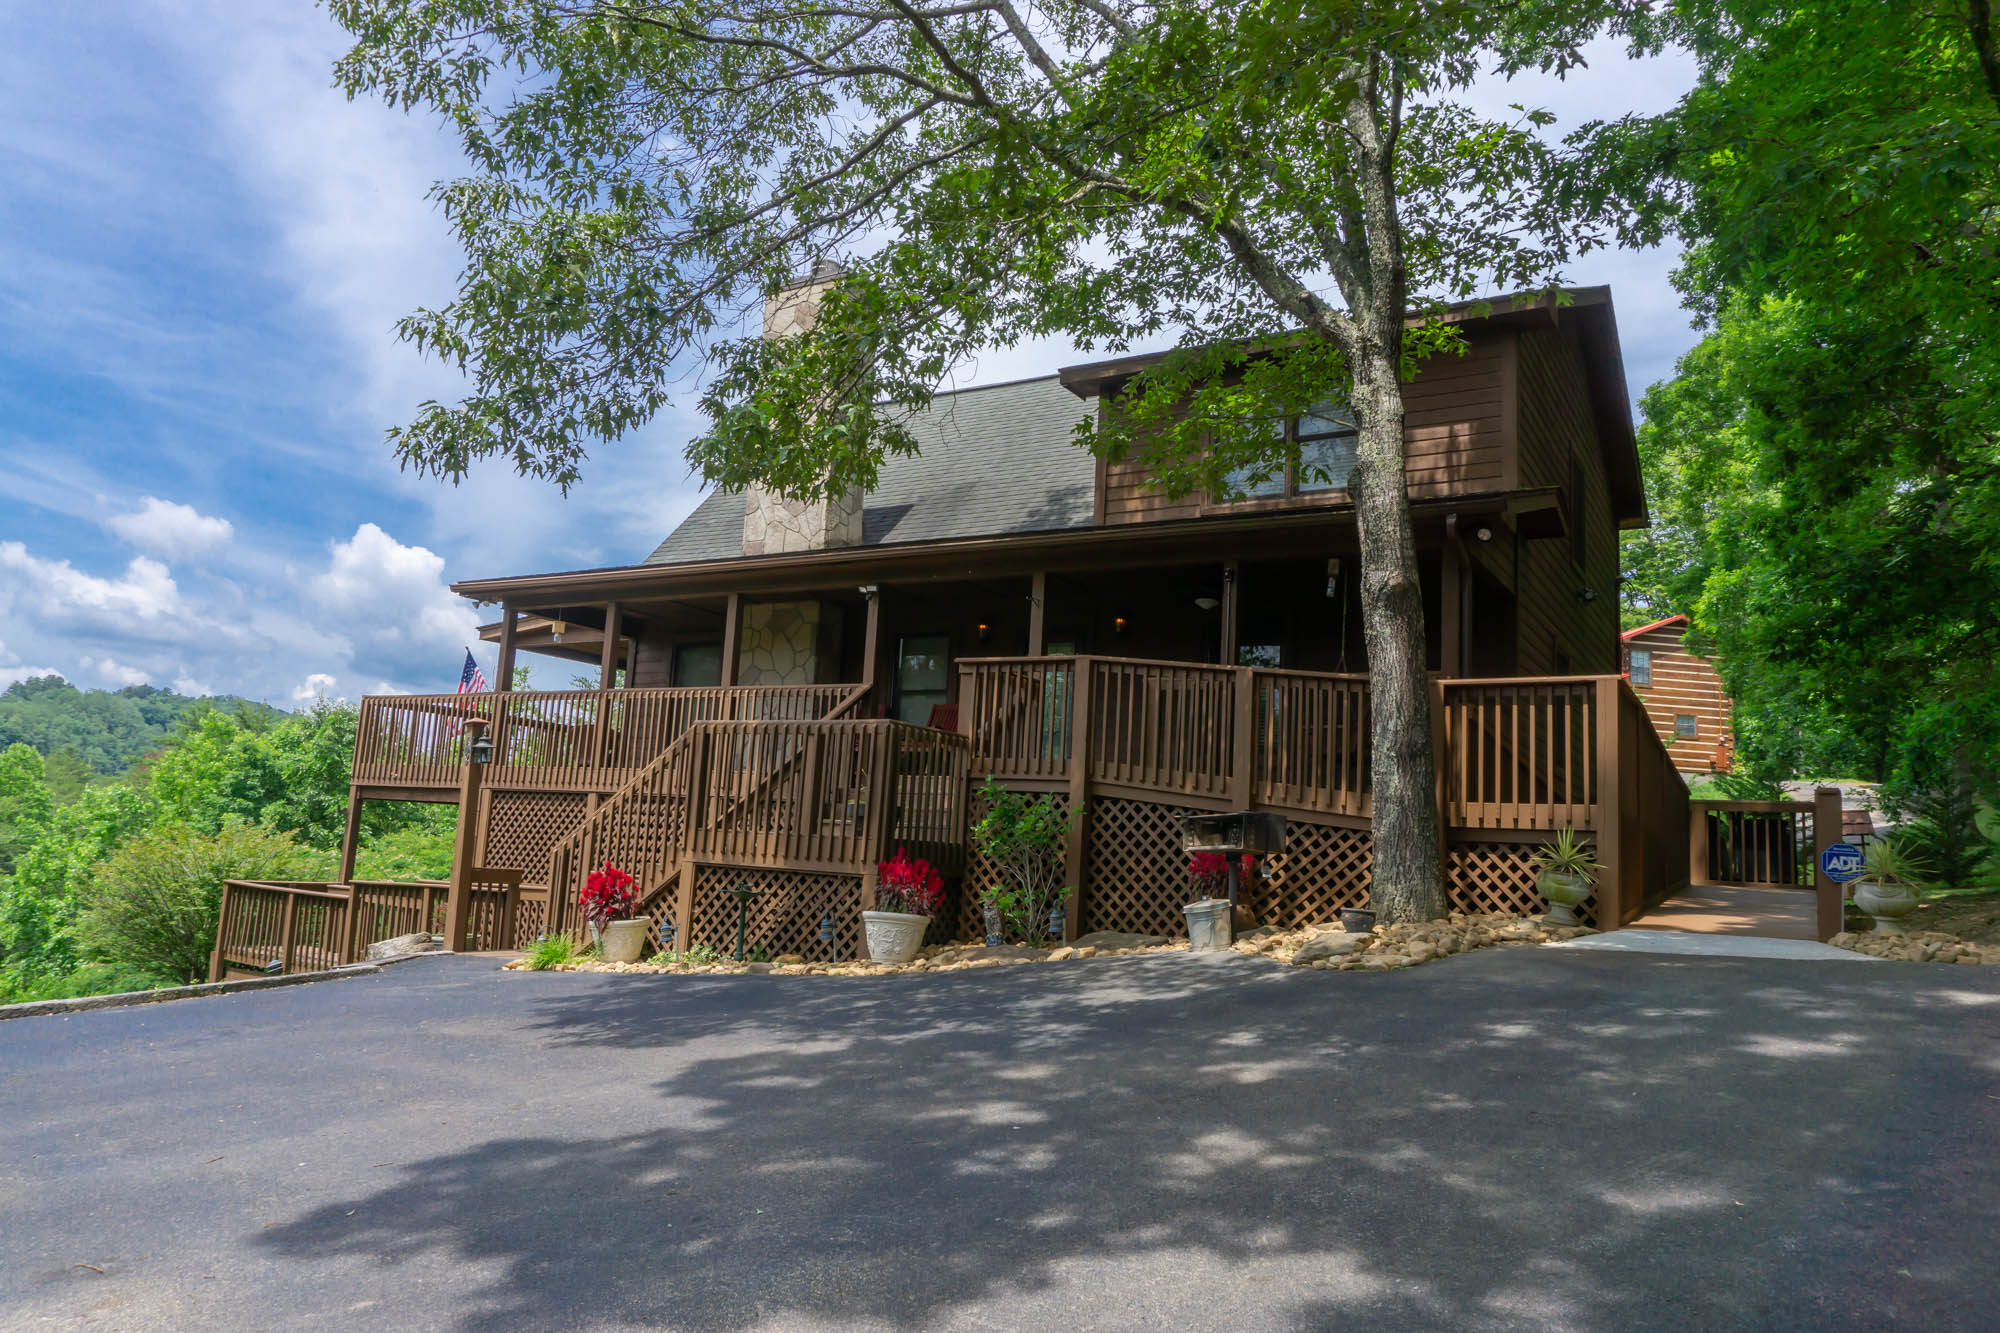 Smoky-Mountain-Splendor-cabin-from-parking-with-entrance-to-wheel-chair-ramp